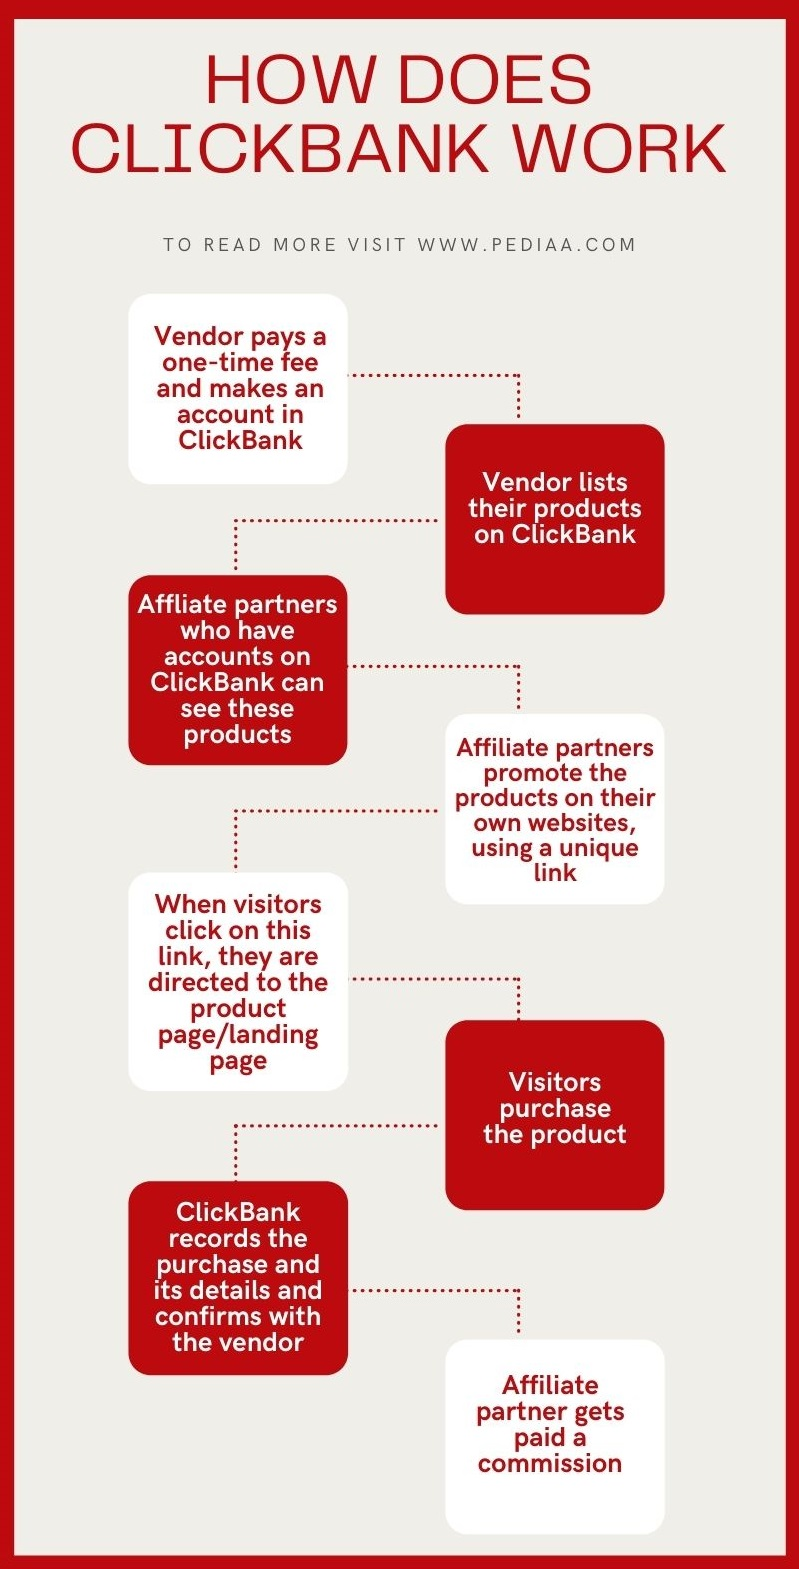 How Does ClickBank Work Infographic